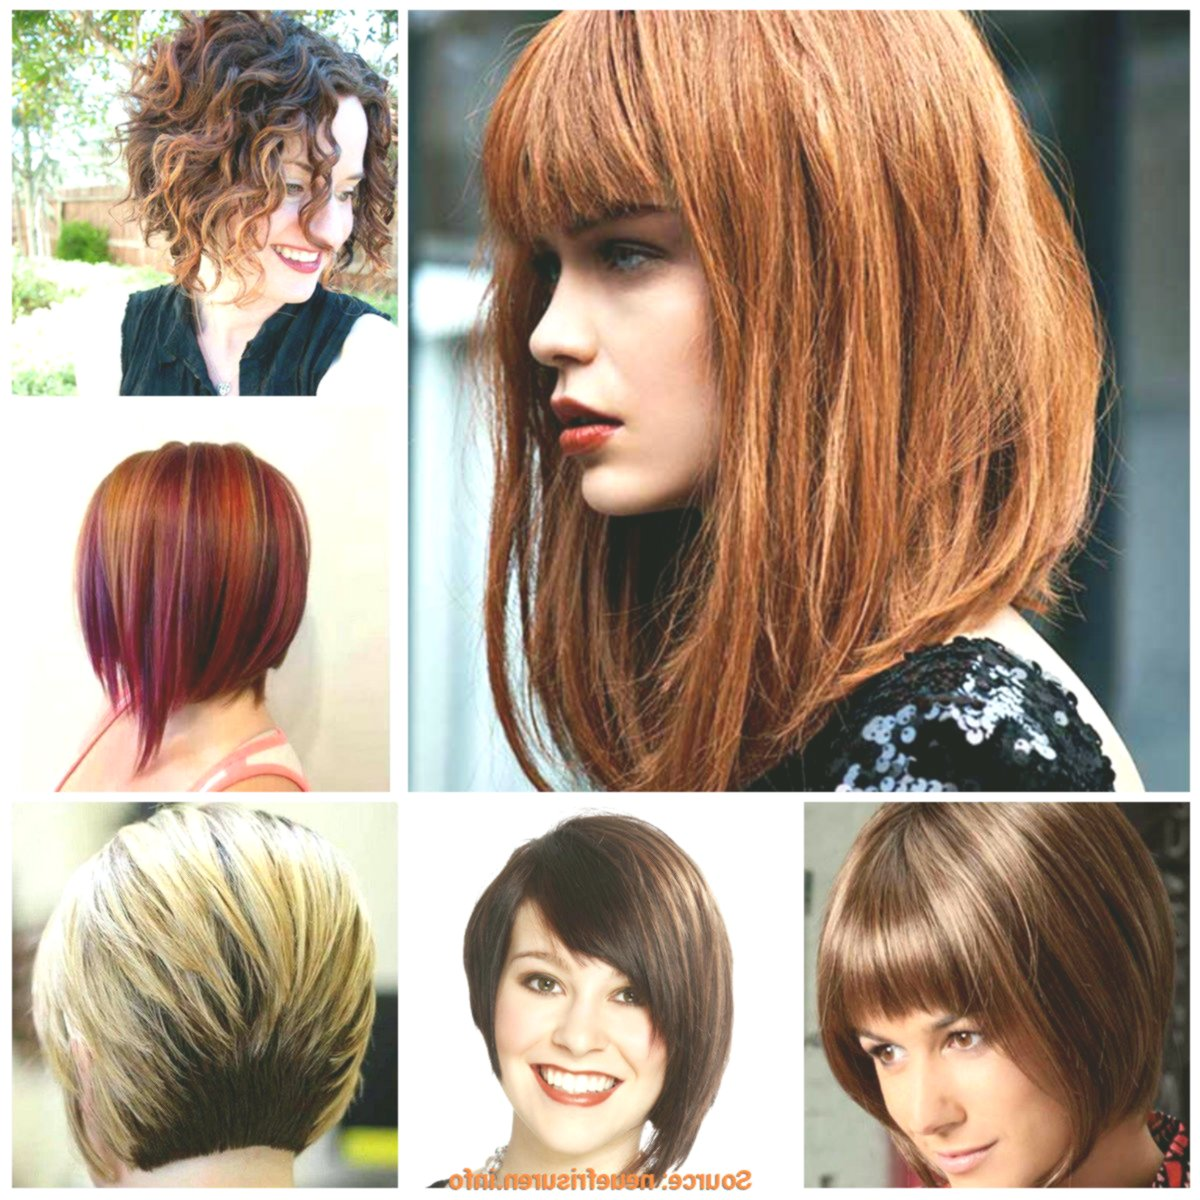 beautiful hairstyle front short back long background-elegant hairstyle front short back long architecture